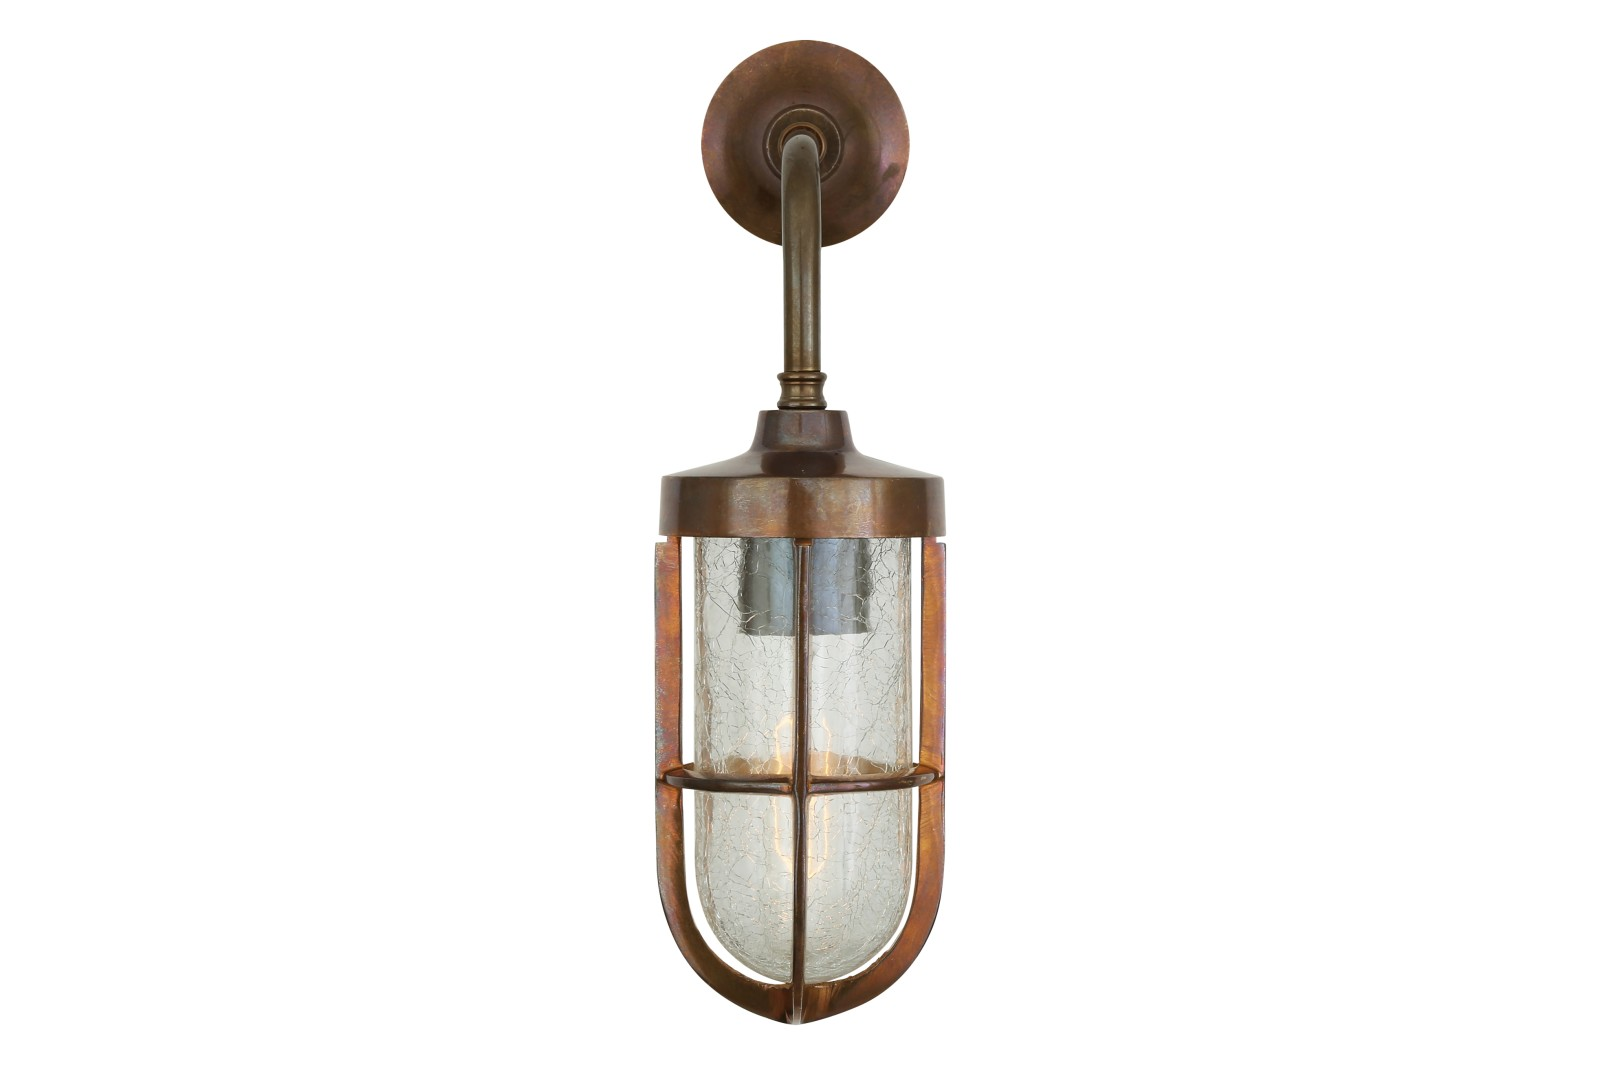 Carac Well Glass Wall Light Antique Brass, Crackled Glass